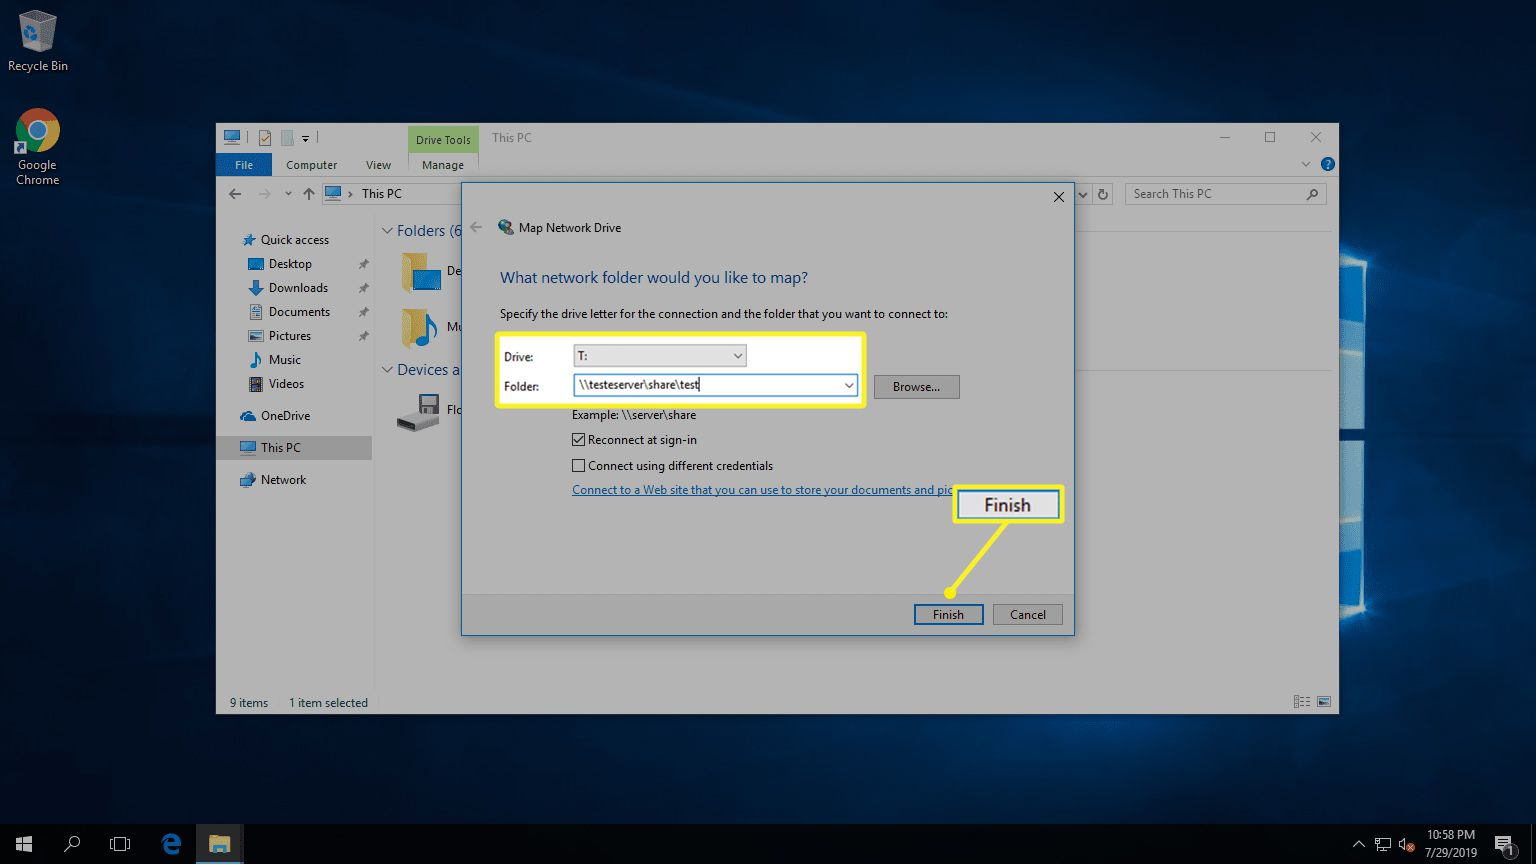 Map a network drive drive and folder fields